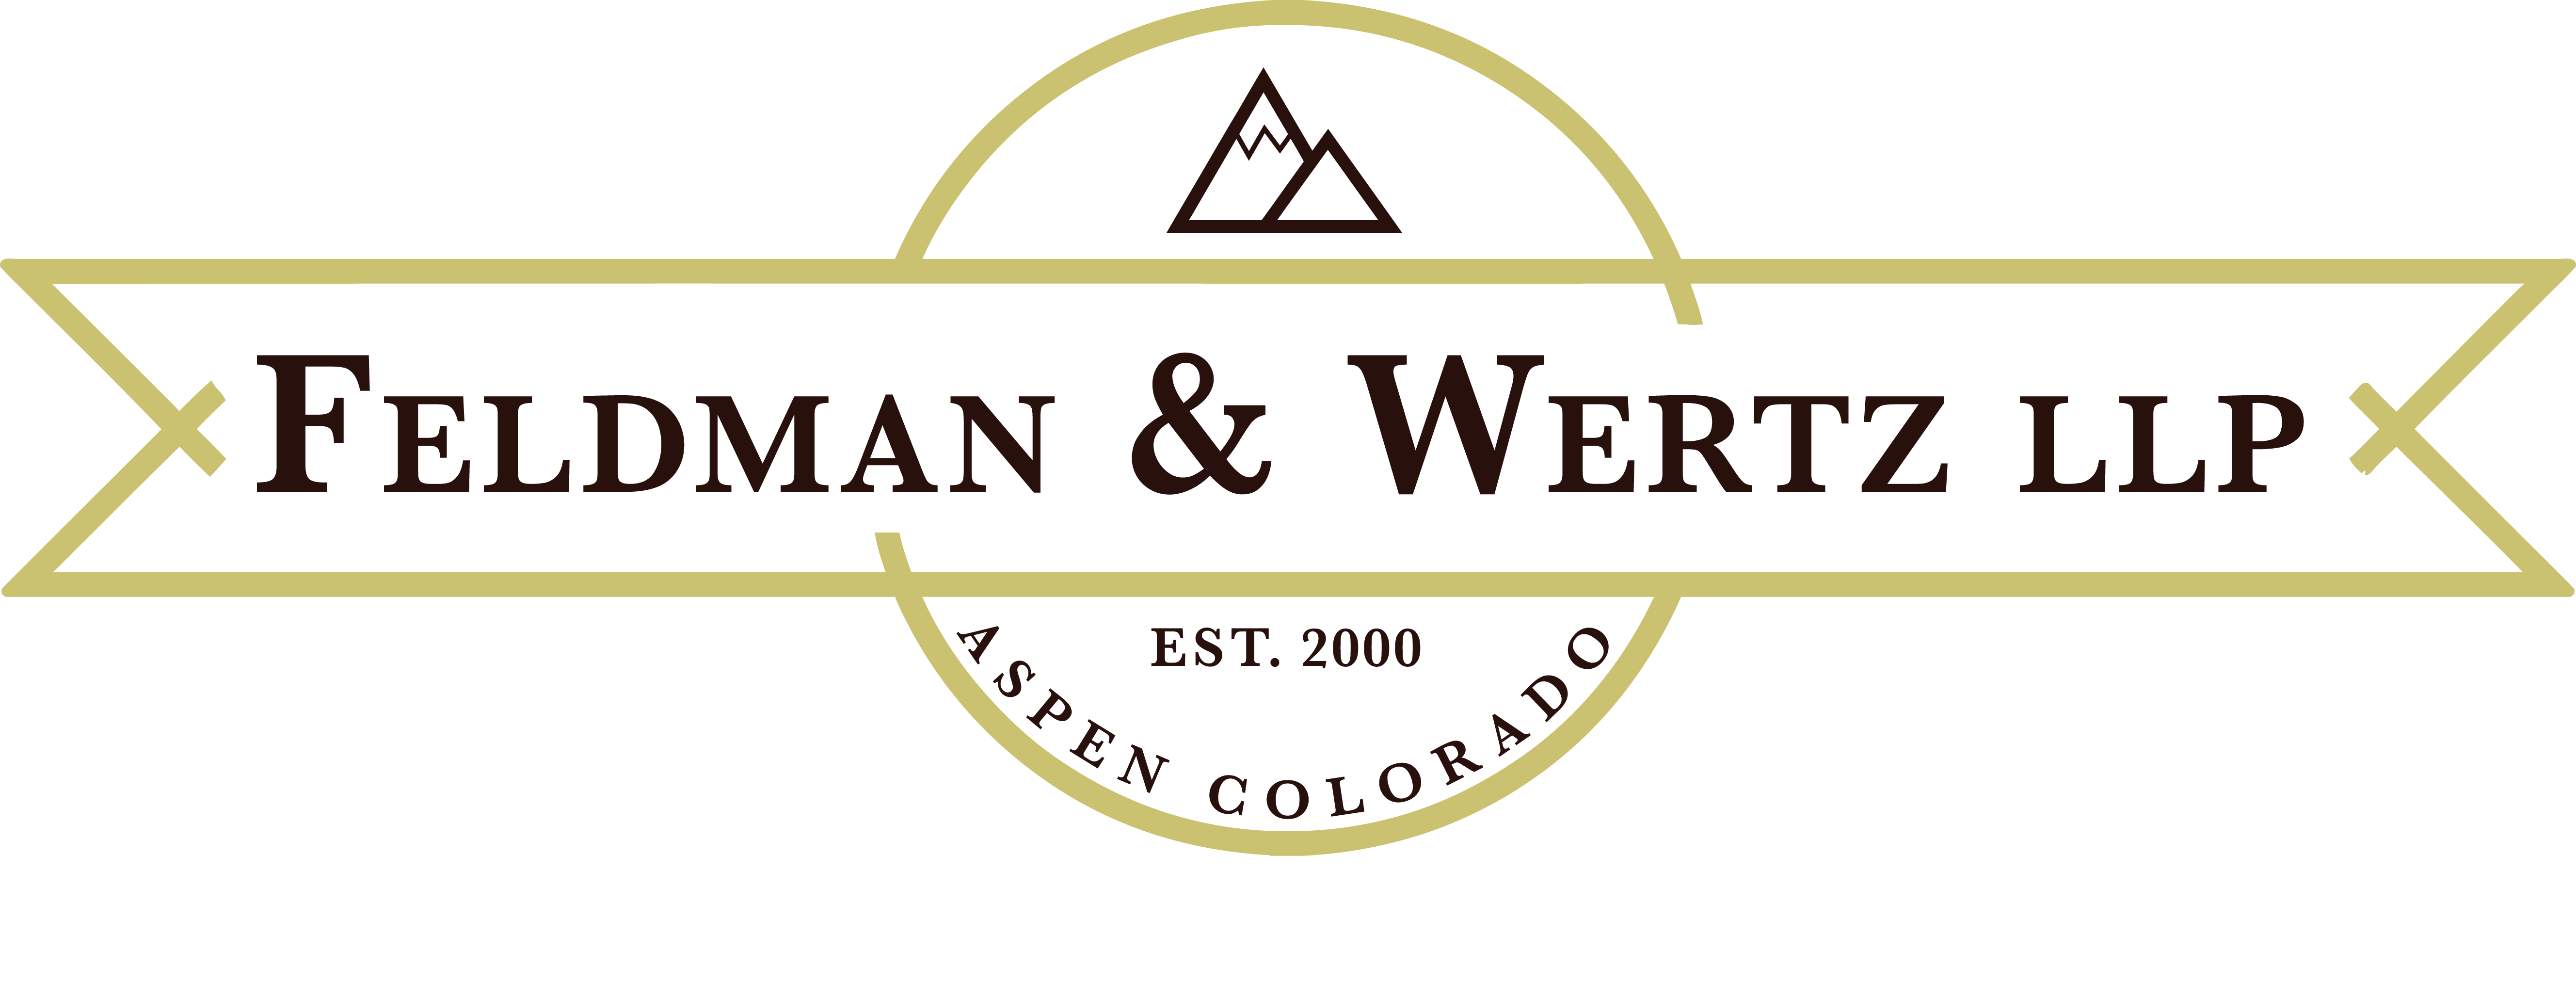 Feldman & Wertz, LLP logo-circle with mountains and established in 2000 in Aspen, CO